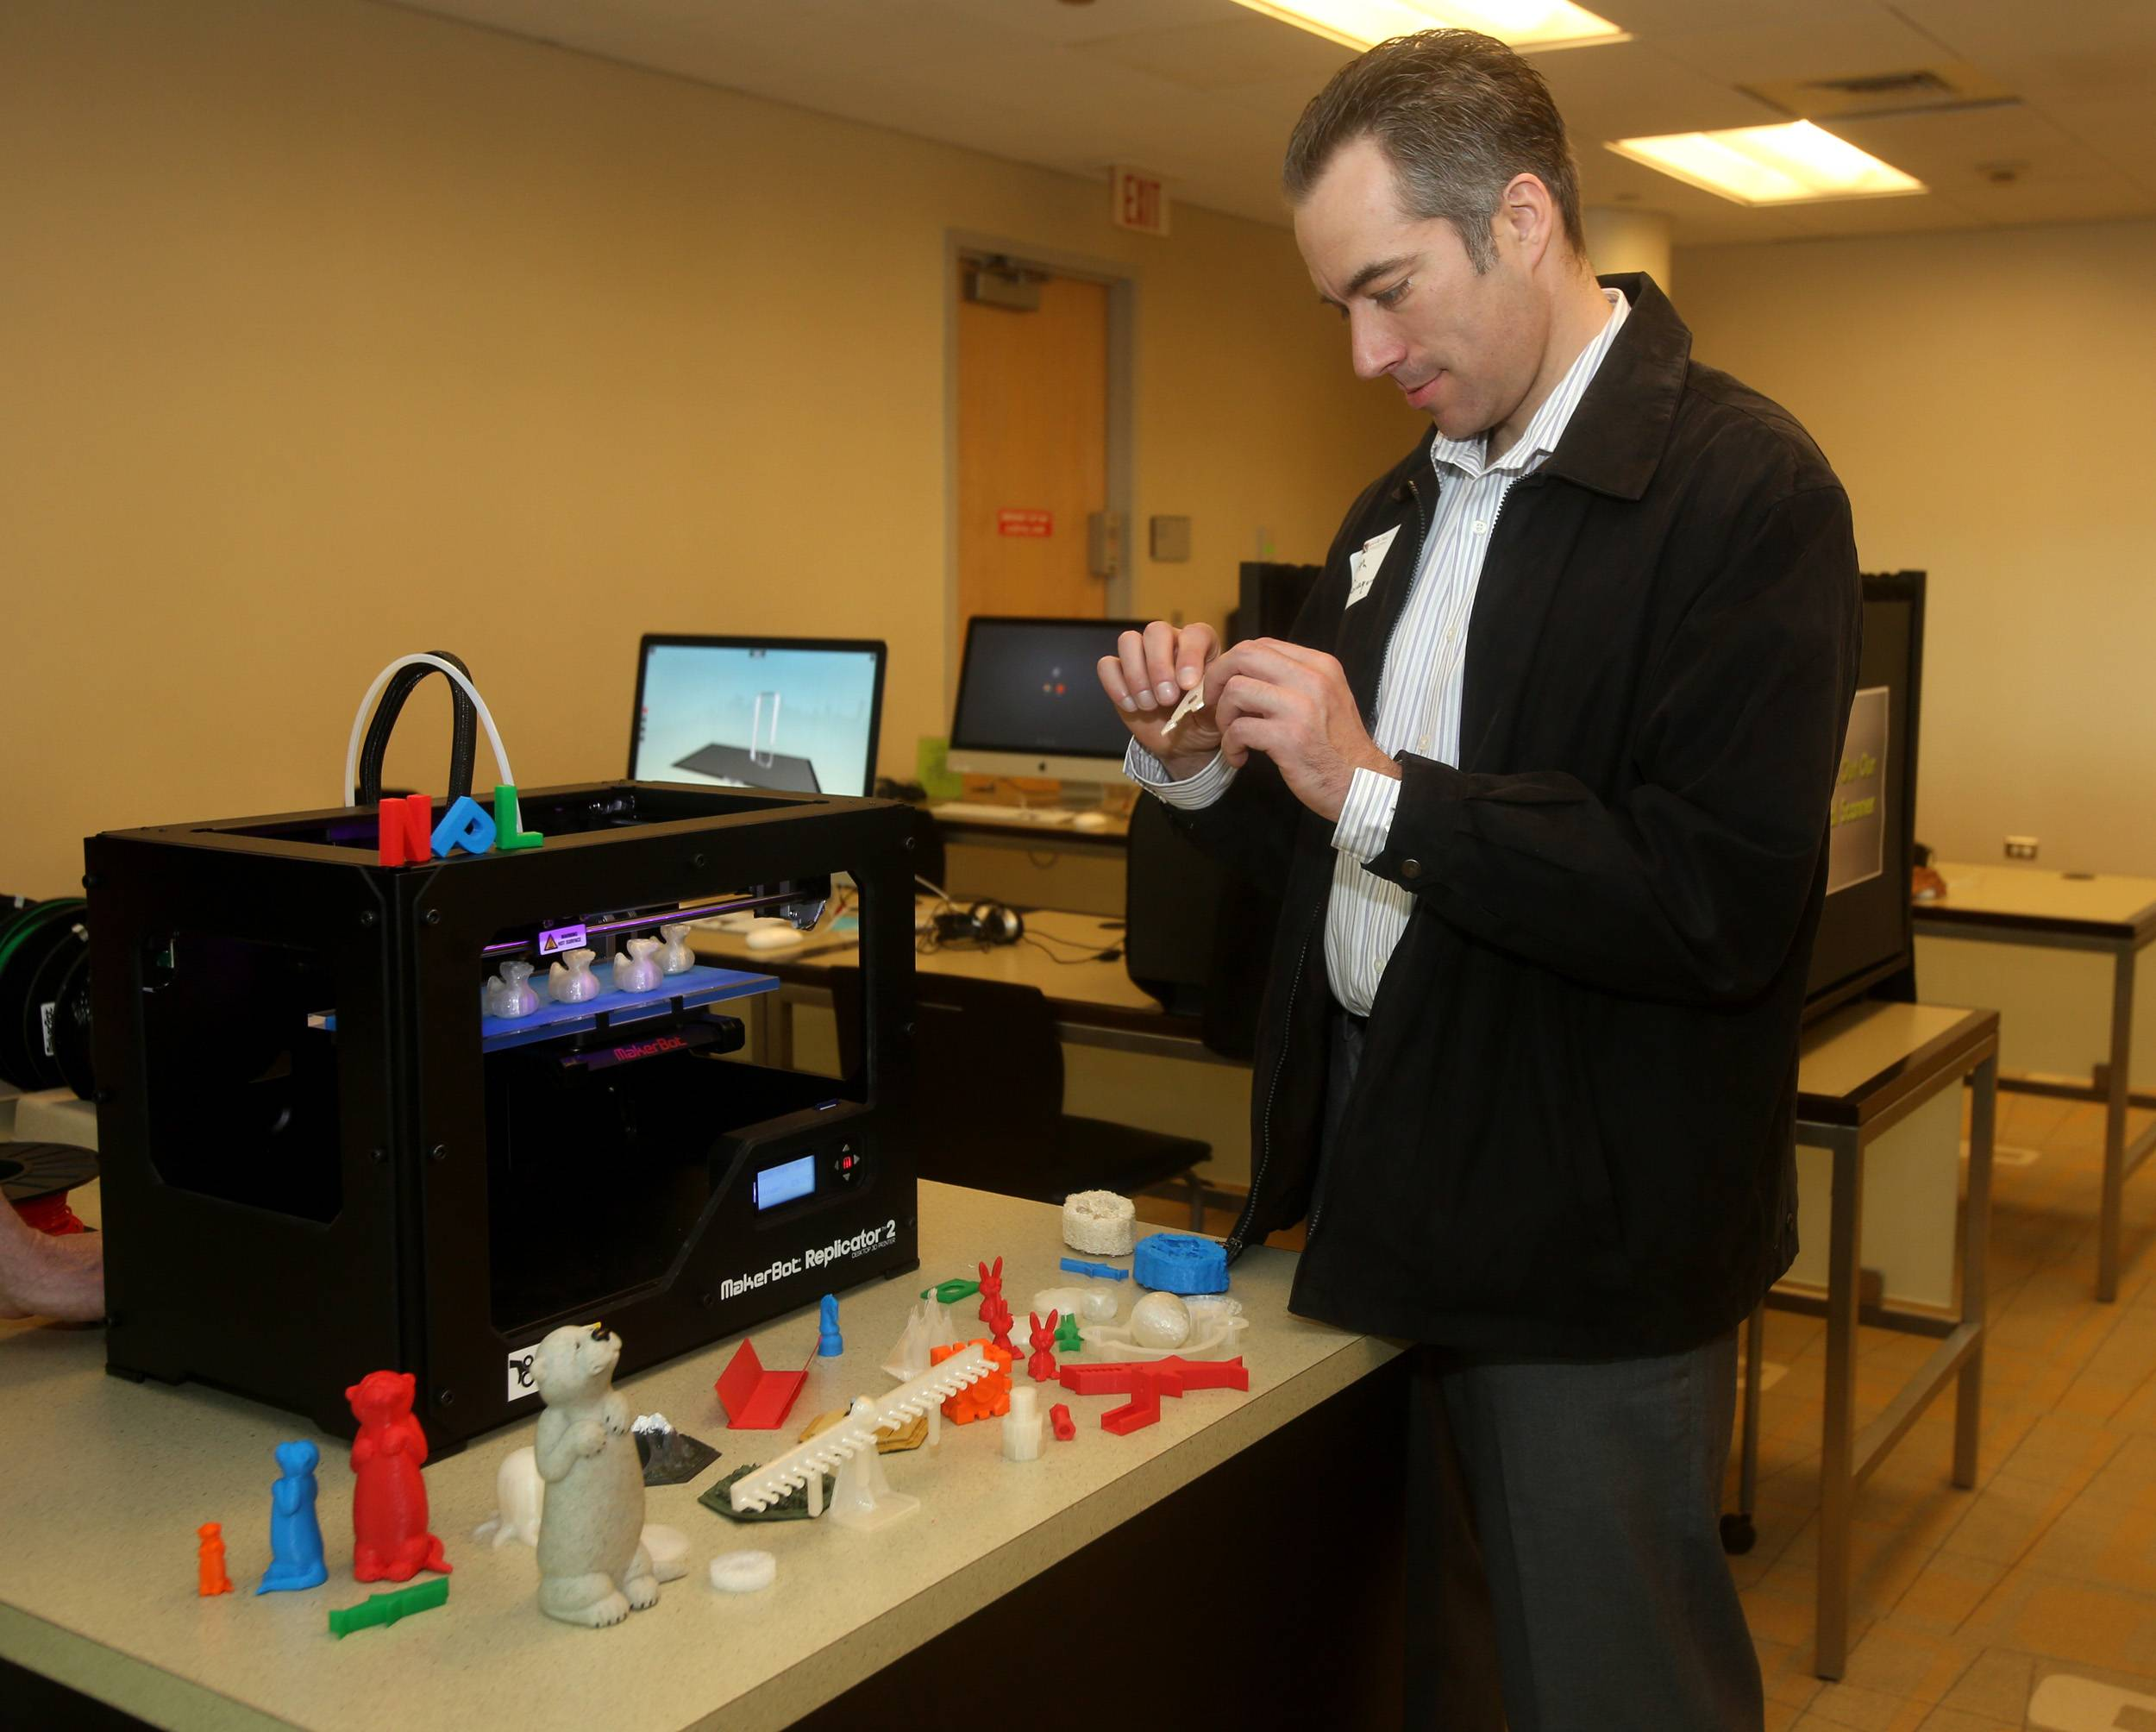 Keith Giaquinto, a chiropractor who toured the 95th Street Library's new Idea Lab on Thursday morning in Naperville with other members of the Naperville Area Chamber of Commerce, examines figurines created by a MakerBot 3-D printer the library bought for about $1,600.